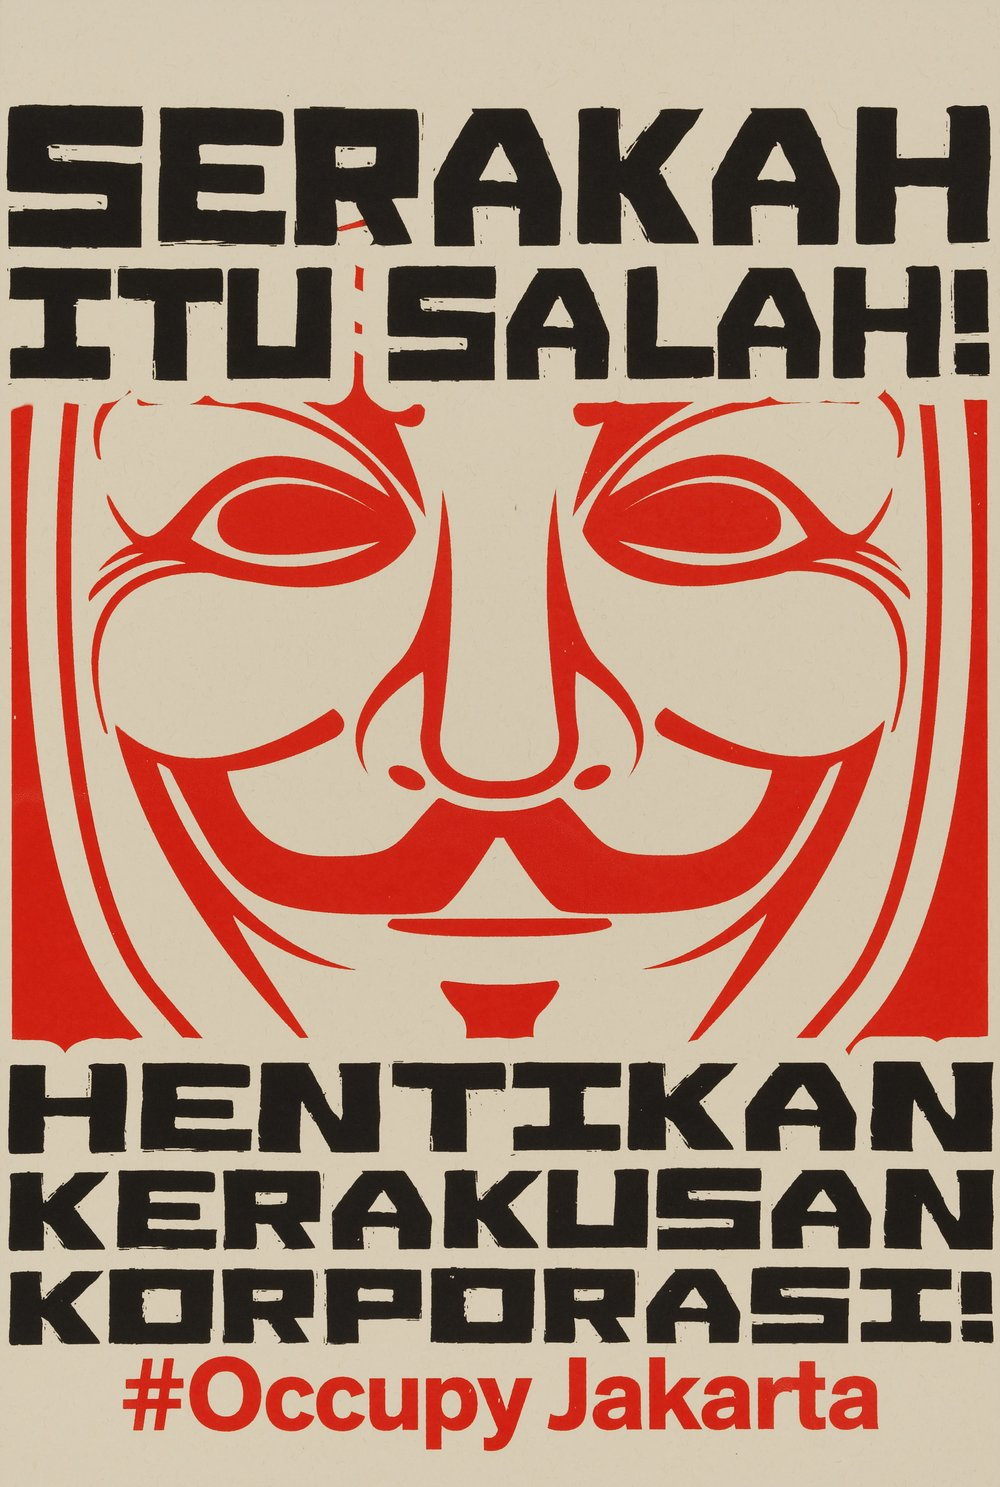 Nobodycorp. Internationale Unlimited, Indonesian, 21st century #Occupy Jakarta: Serakah Itu Salah!, from the Occuprint Sponsor Portfolio 2012 Screenprint on French paper 18/100 Sheet: 18 1/16 x 12 1/16 in. (45.9 x 30.6 cm) Hood Museum of Art, Dartmouth College: Purchased through the Contemporary Art Fund; 2012.38.10 © Nobodycorp